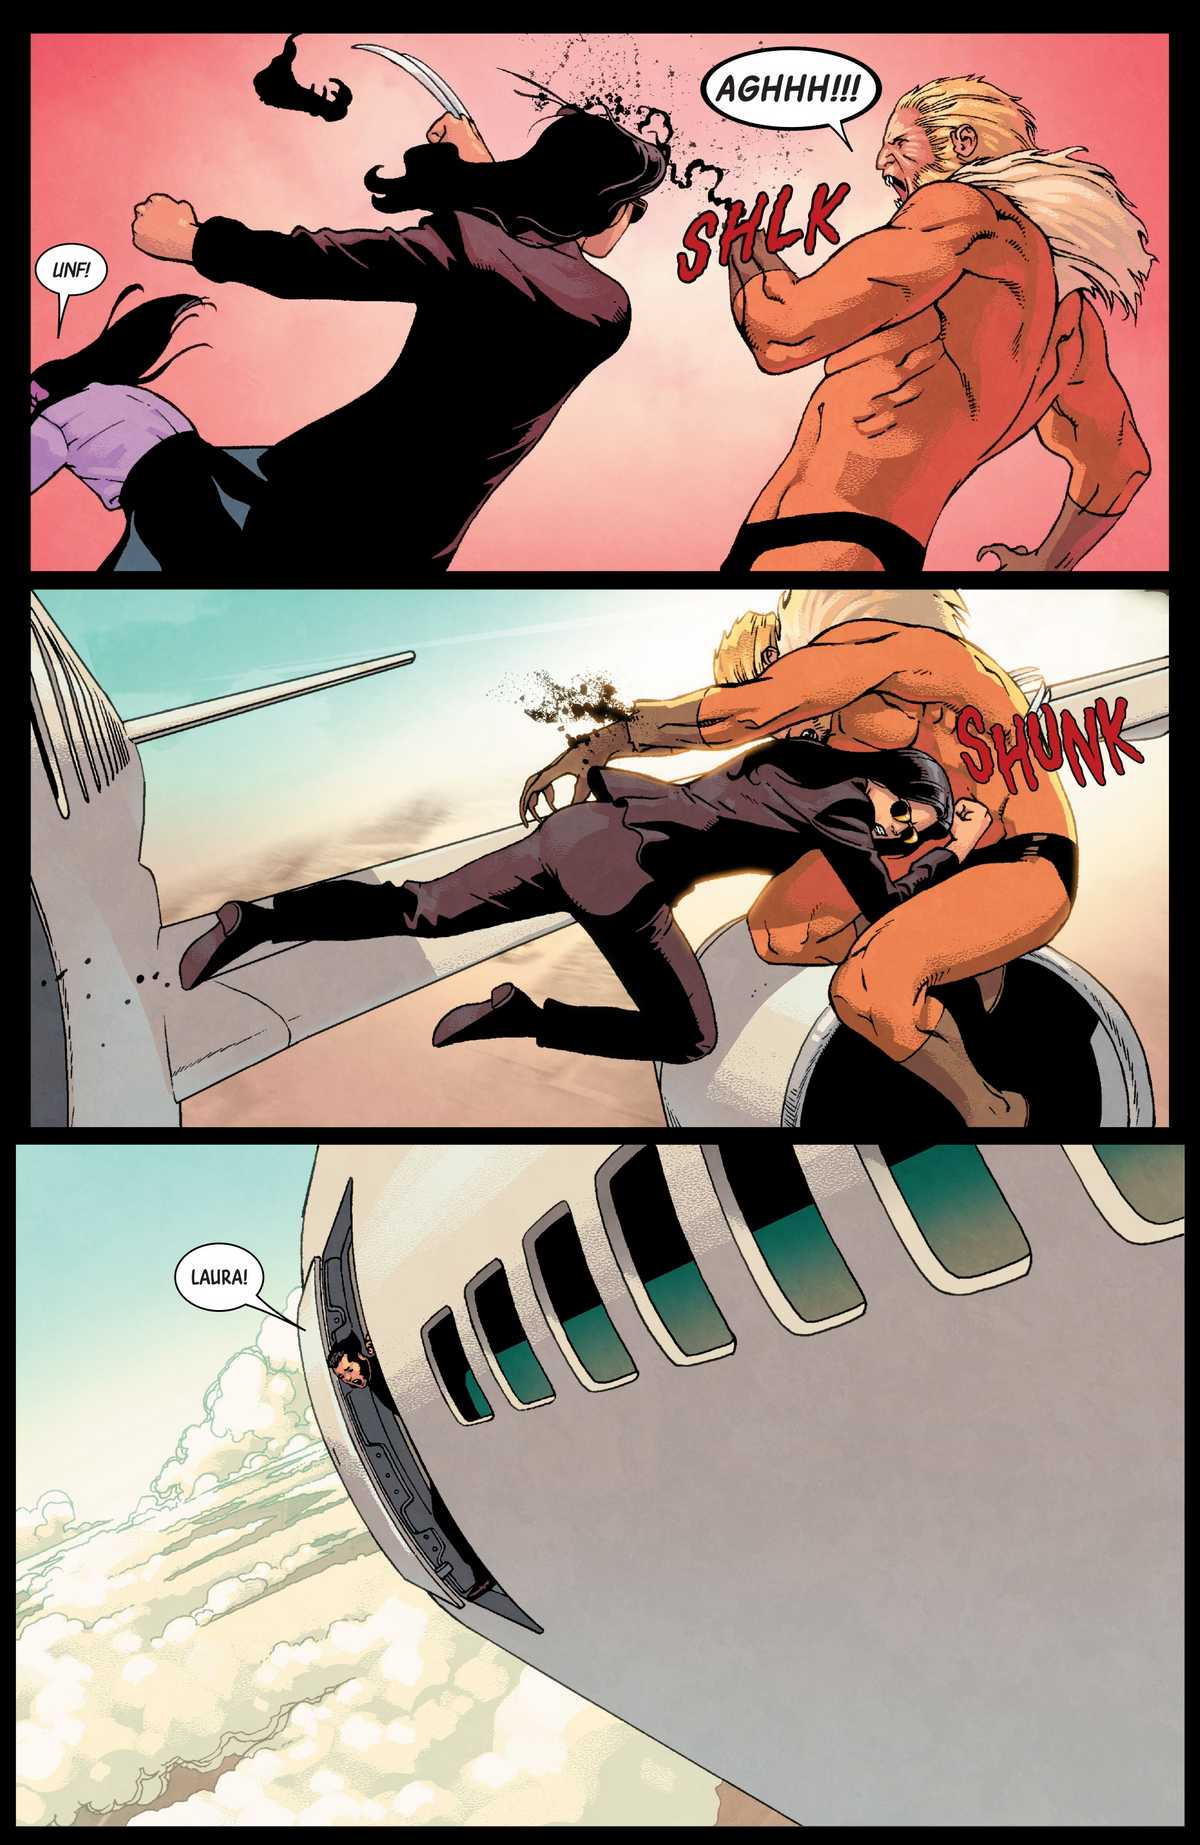 laura tackles sabretooth out of the window